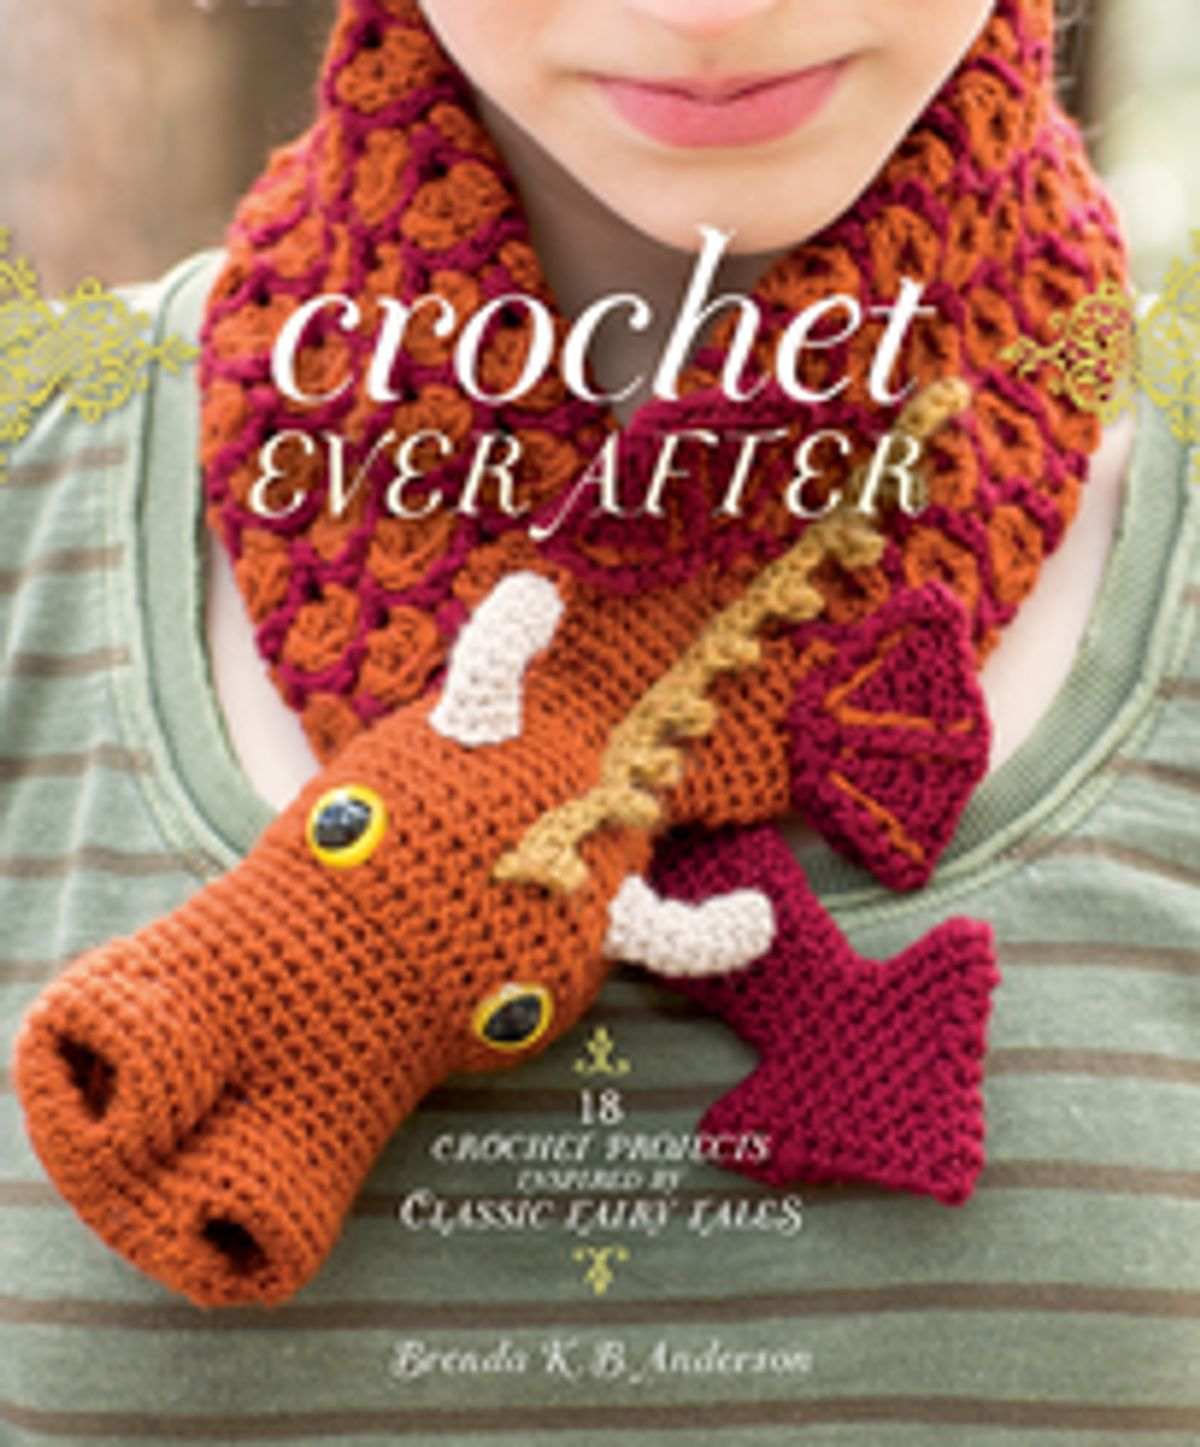 Crochet Ever After: 20 Projects Inspired by Classic Fairy Tales